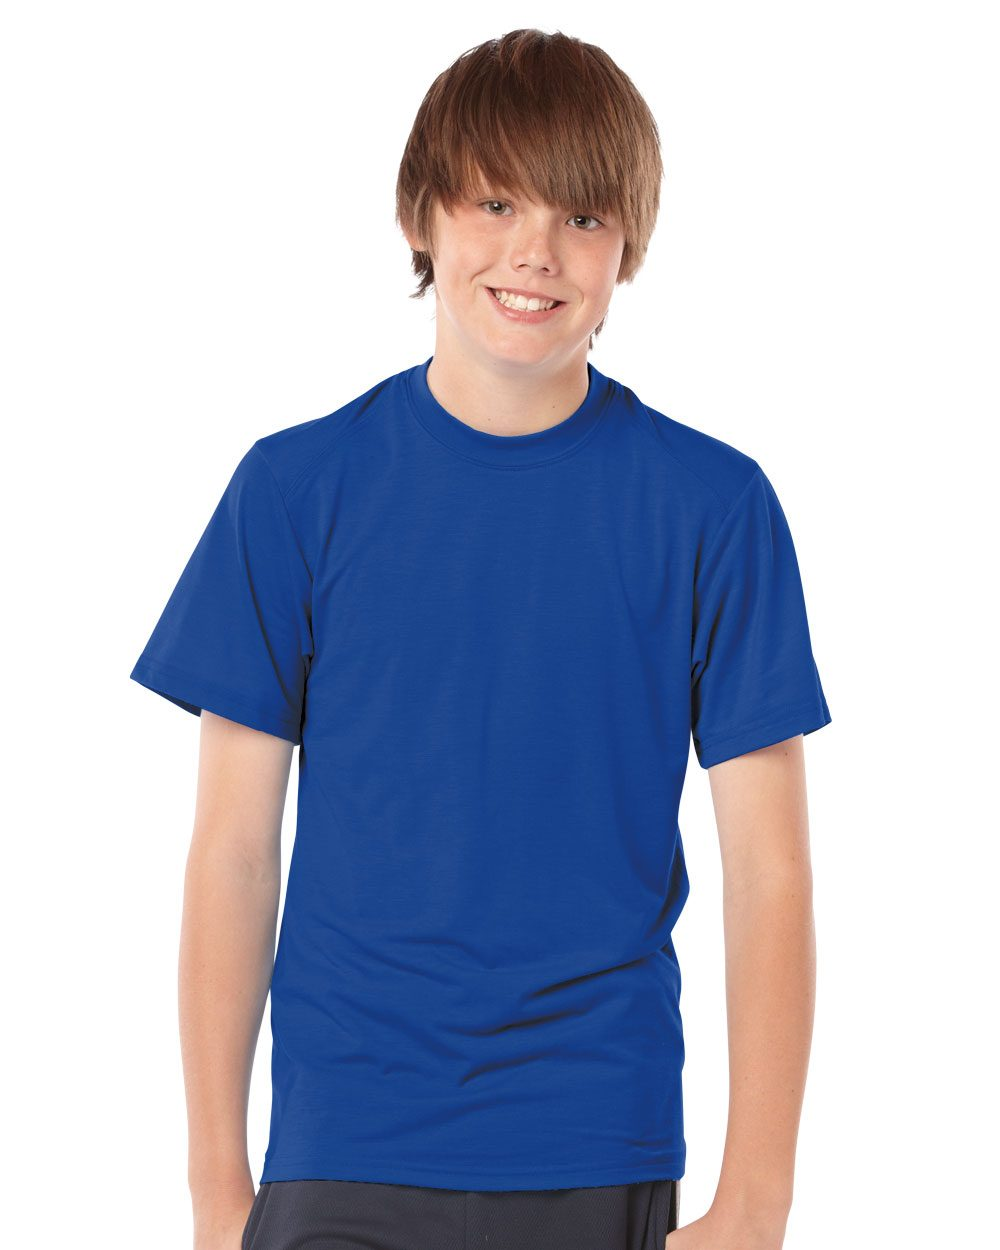 Badger 2820- Youth Cotton-Feel B-Tech T-Shirt